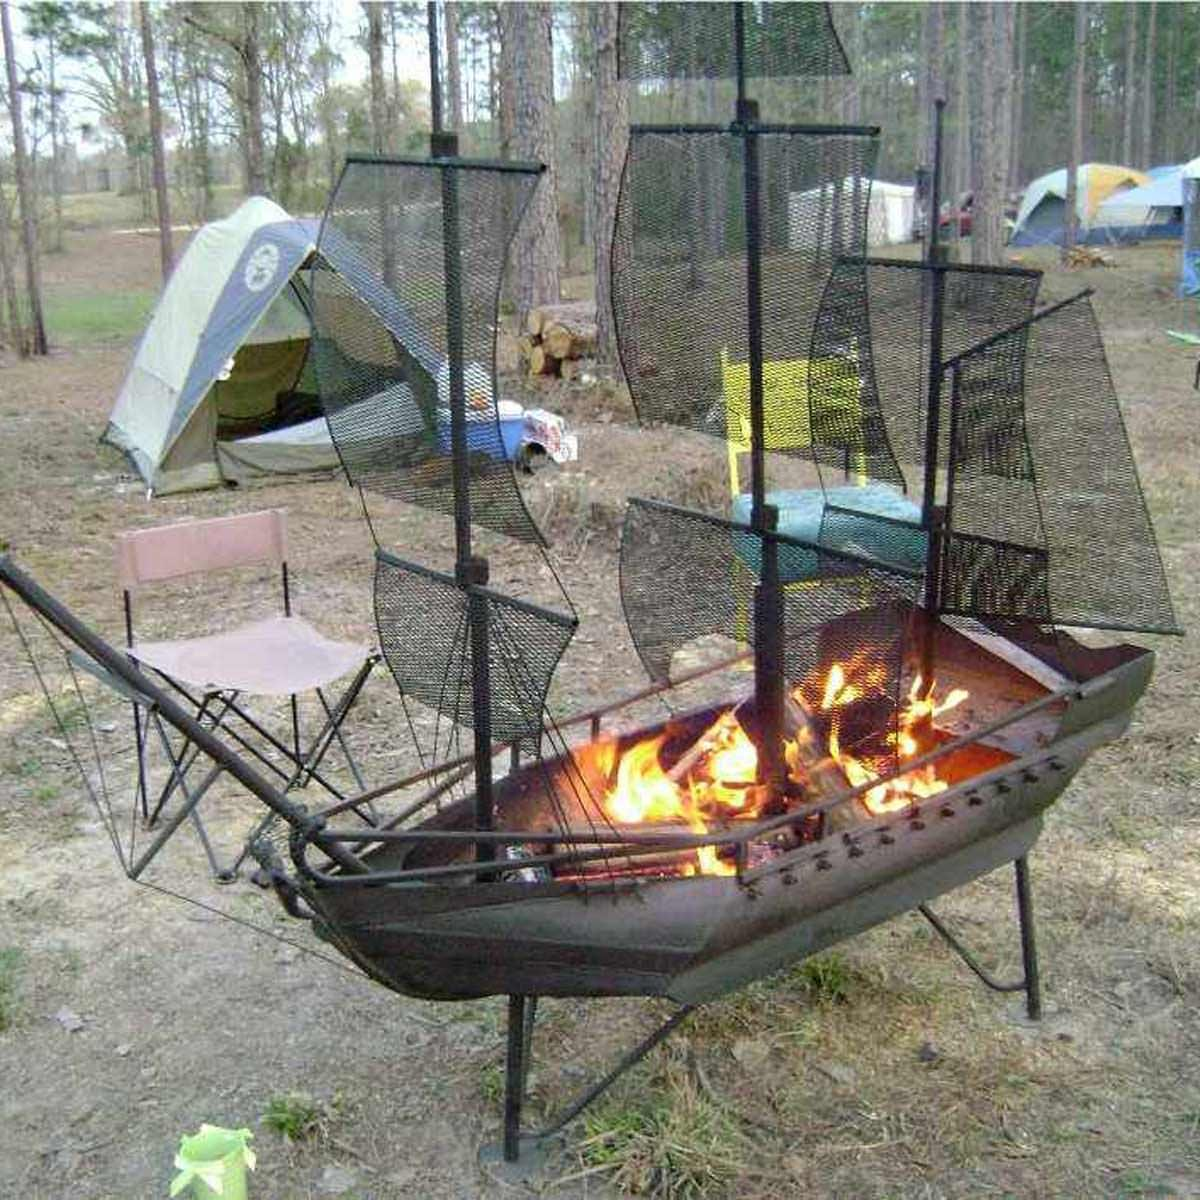 12 Great Backyard Fire Pit Ideas | The Family Handyman